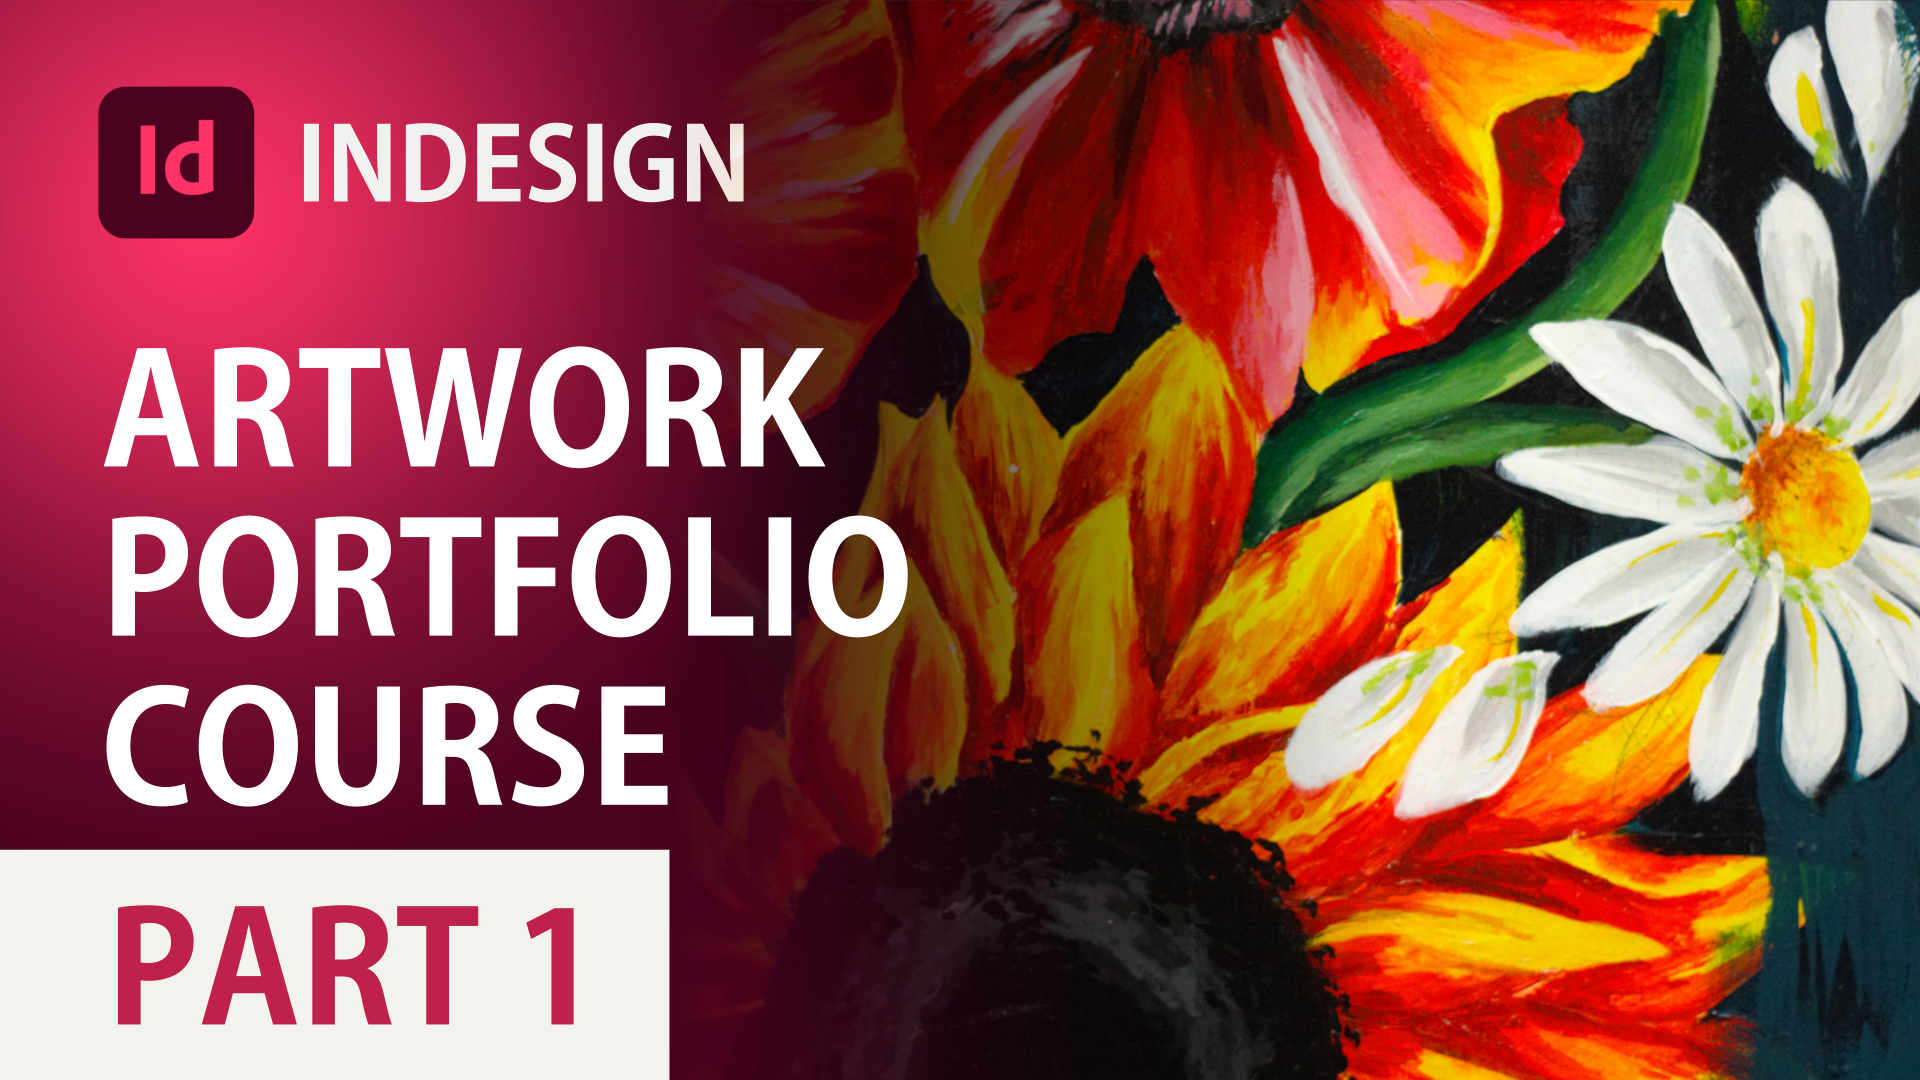 Create Art Portfolio for University in Adobe InDesign (Part 1): INTRODUCTION to InDesign Course